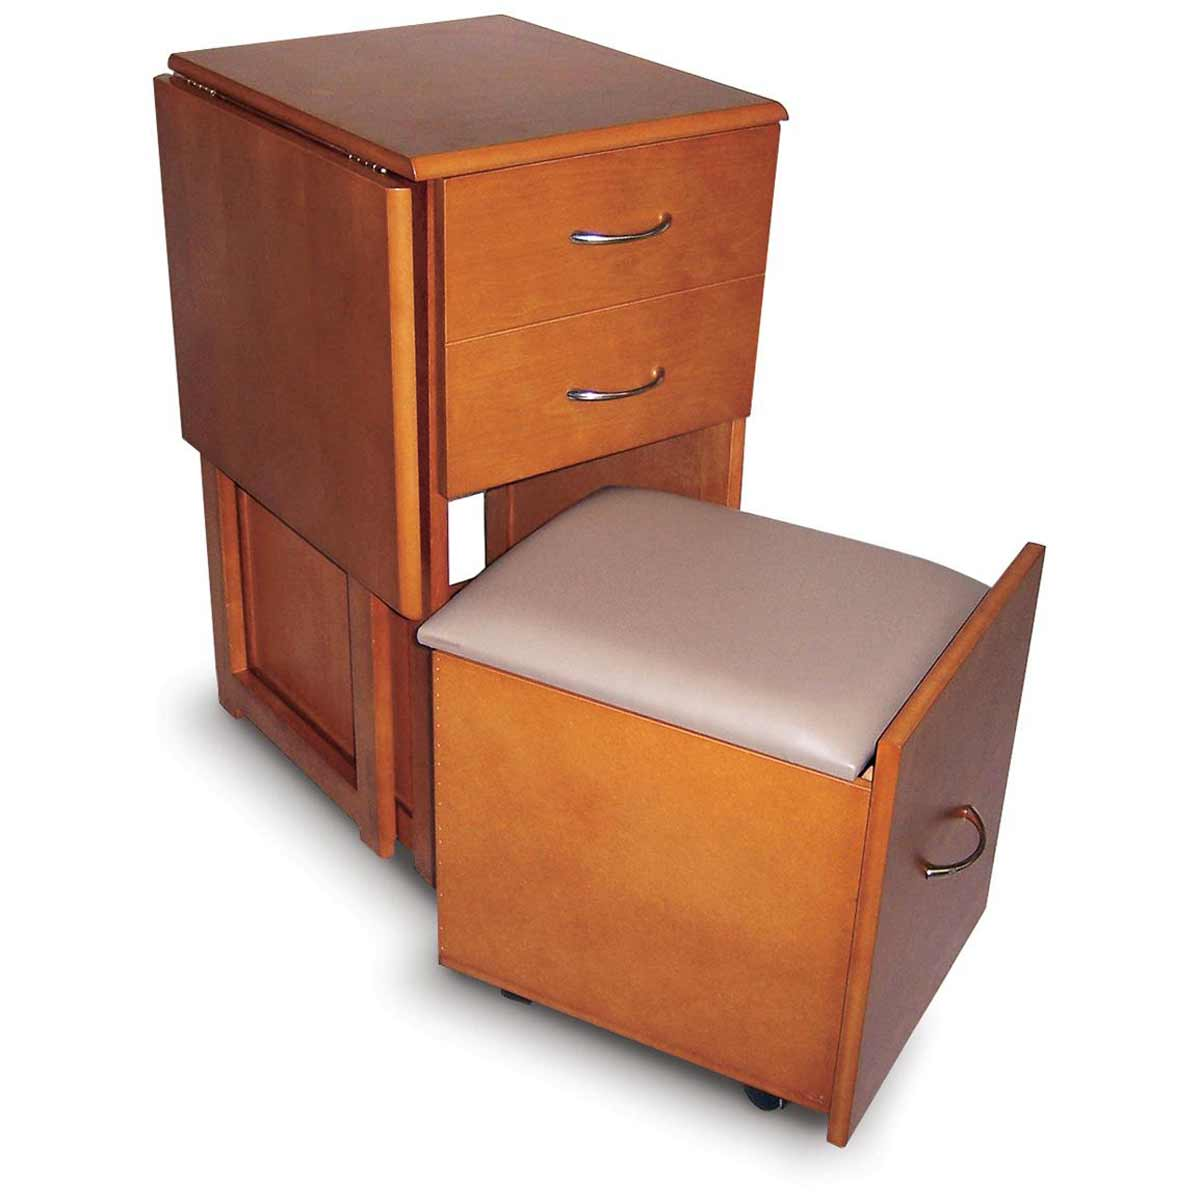 space saver desks and chair with two drawers